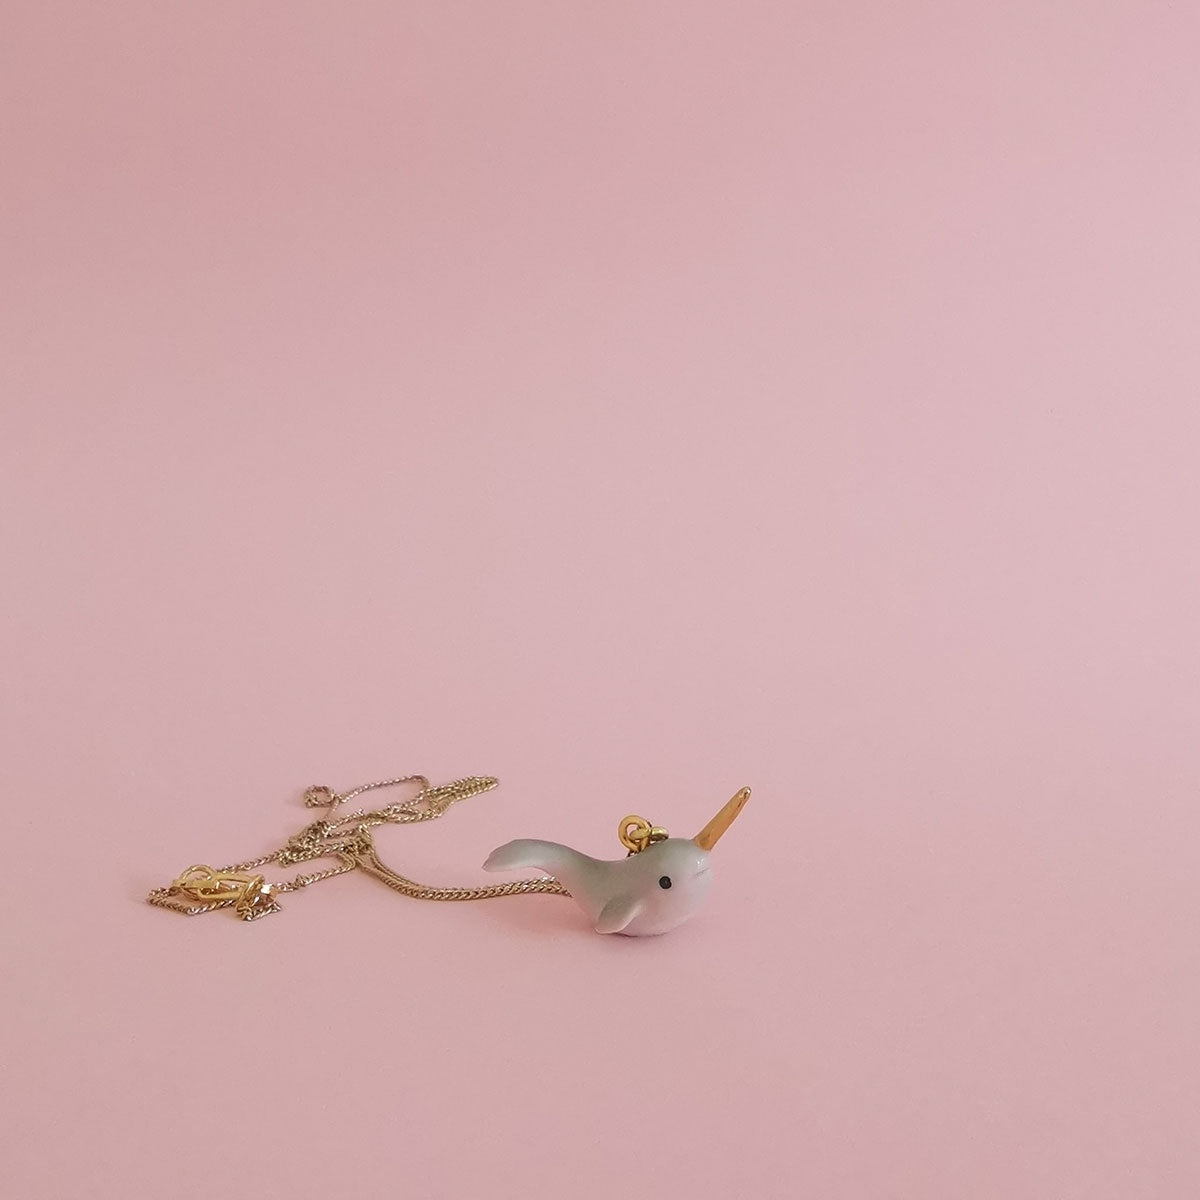 Tiny Porcelain Critter Necklace - Narwhal